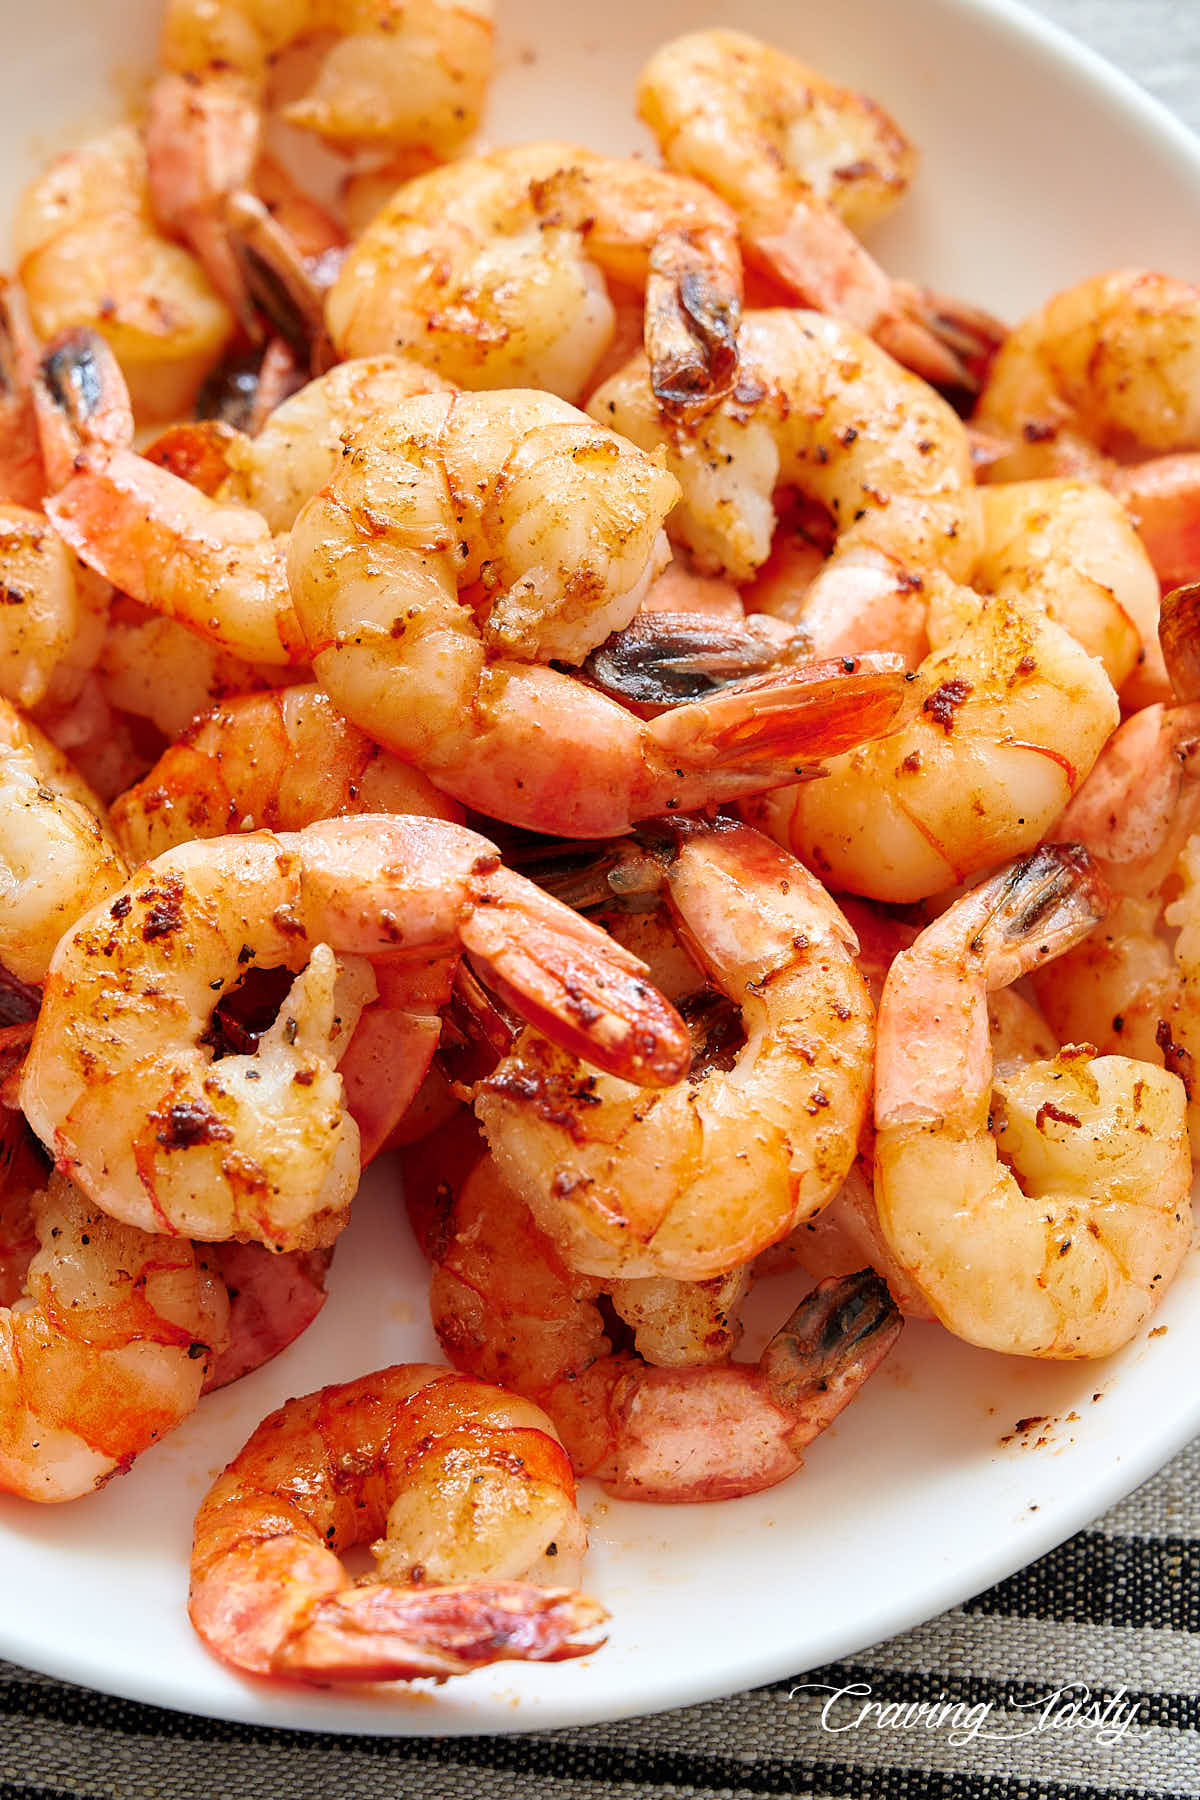 Pan-seared shrimp in a bowl.